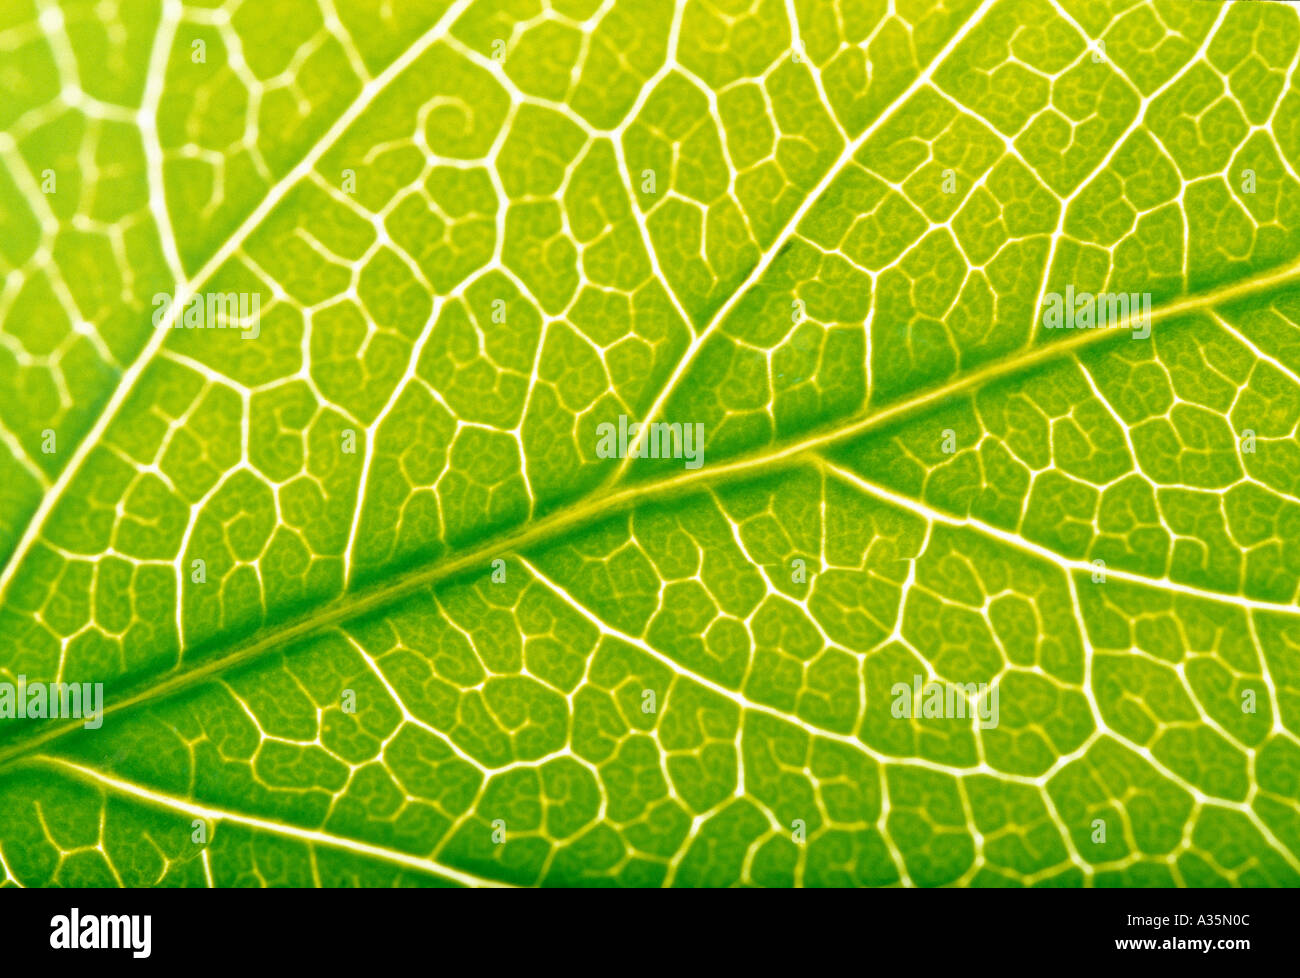 feuille verte Photo Stock